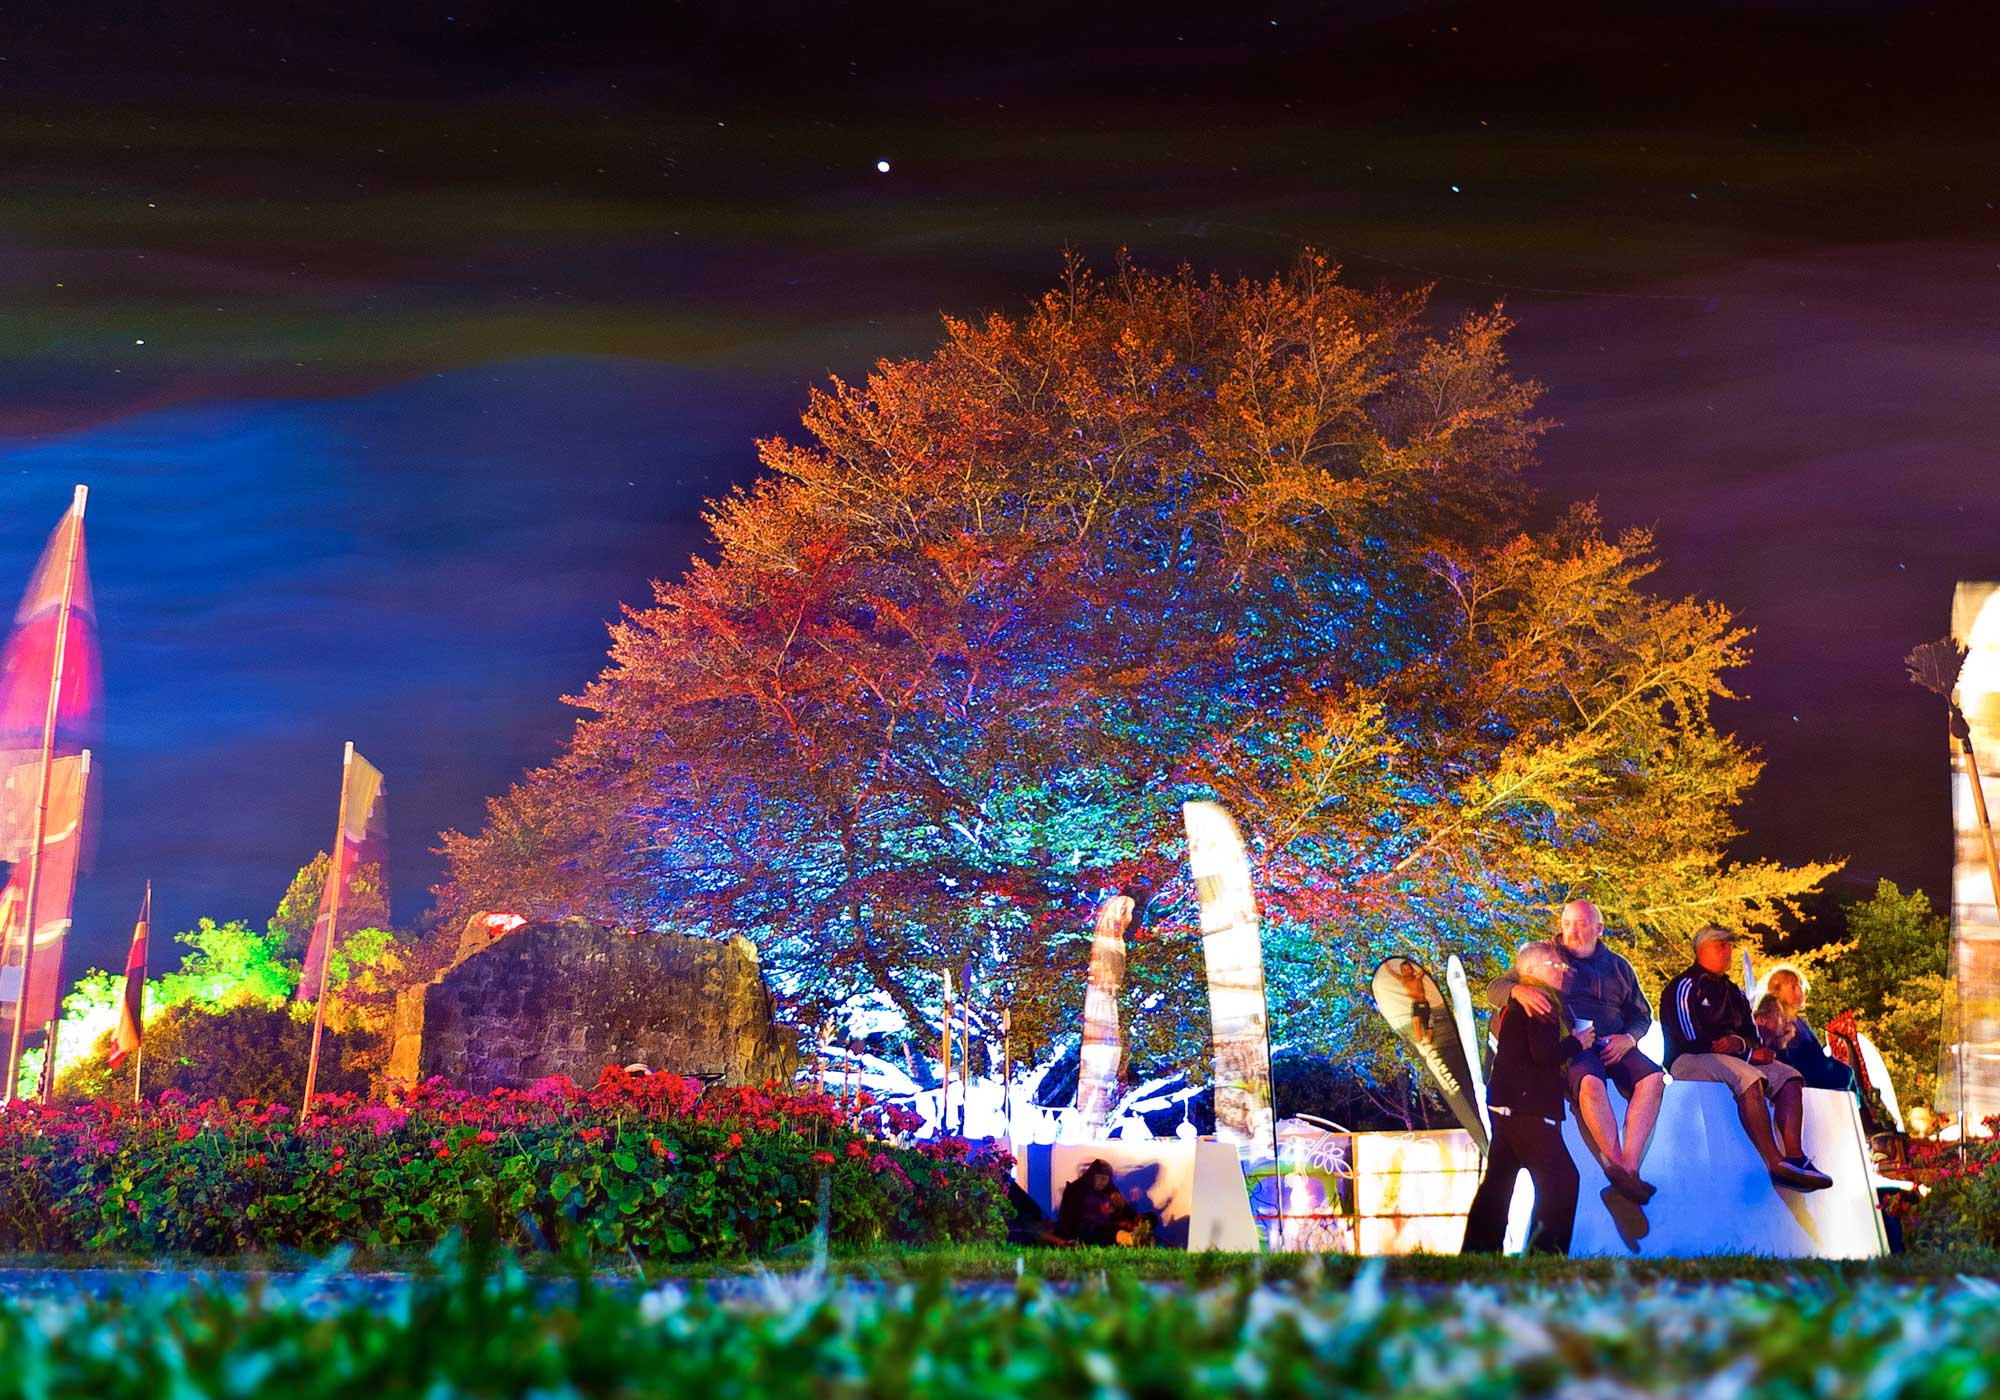 Colourfully lighted up tree against the night sky with a couple in the foreground at WOMAD, Taranaki